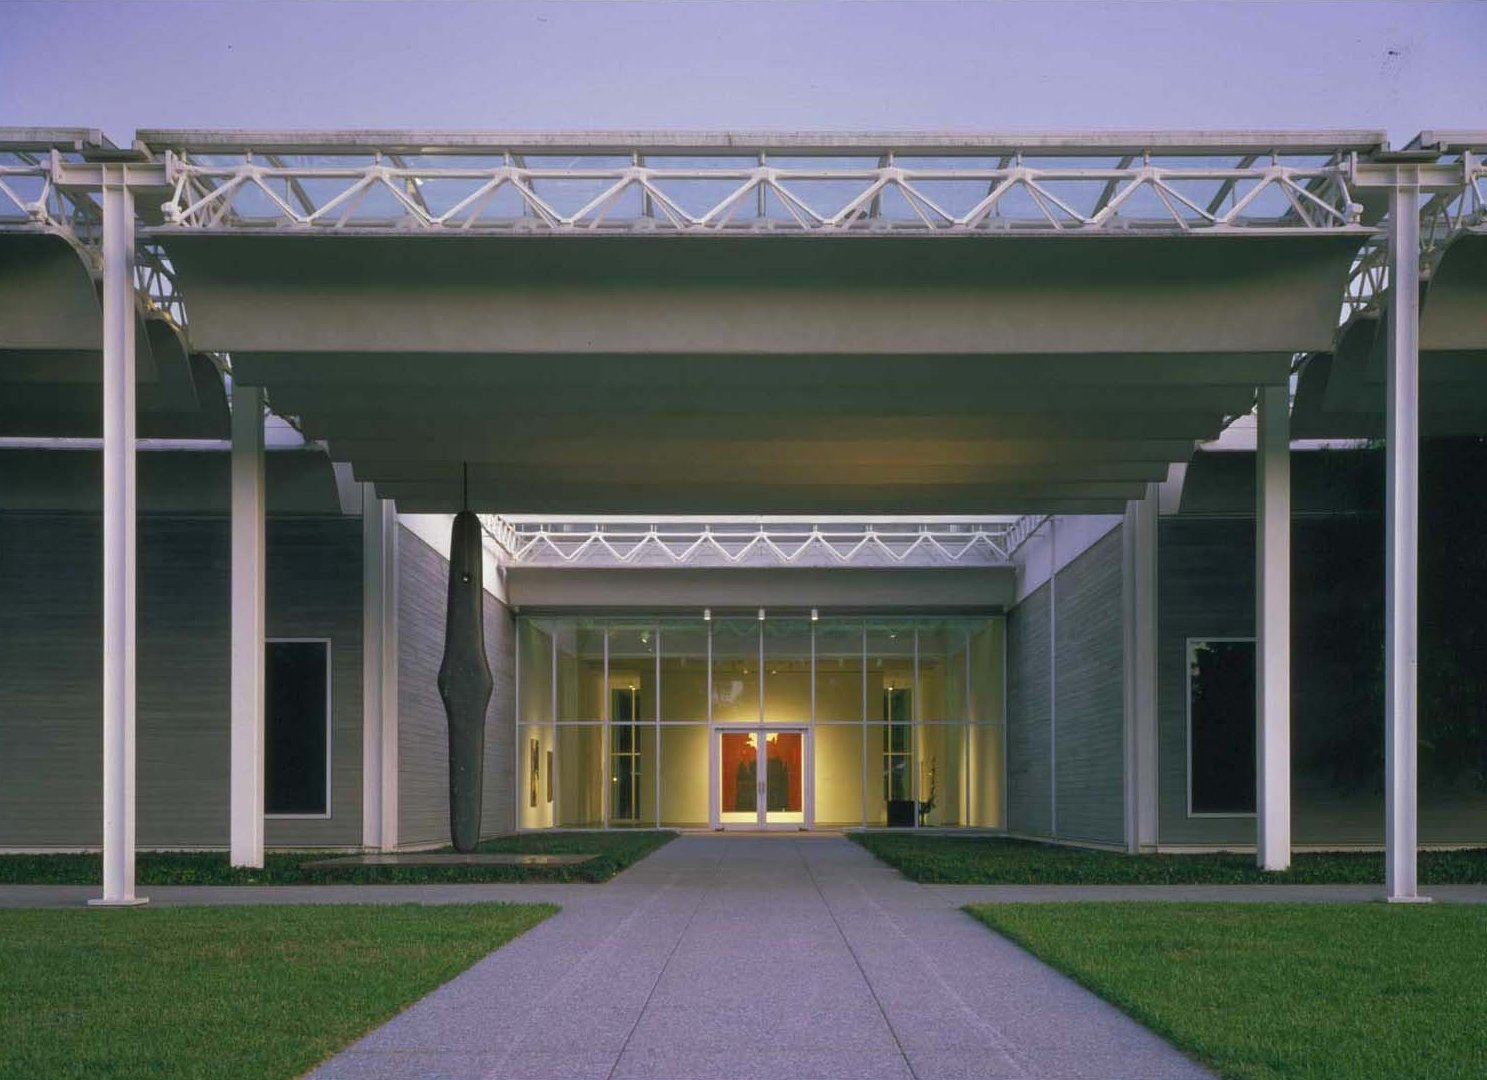 The Menil Collection, located in Houston's Montrose-area museum district, houses the collection of John and Dominique de Menil. The landmark building was designed by Pritzker Prize-winning architect Renzo Piano.  Photo 15 of 17 in Houston, Texas